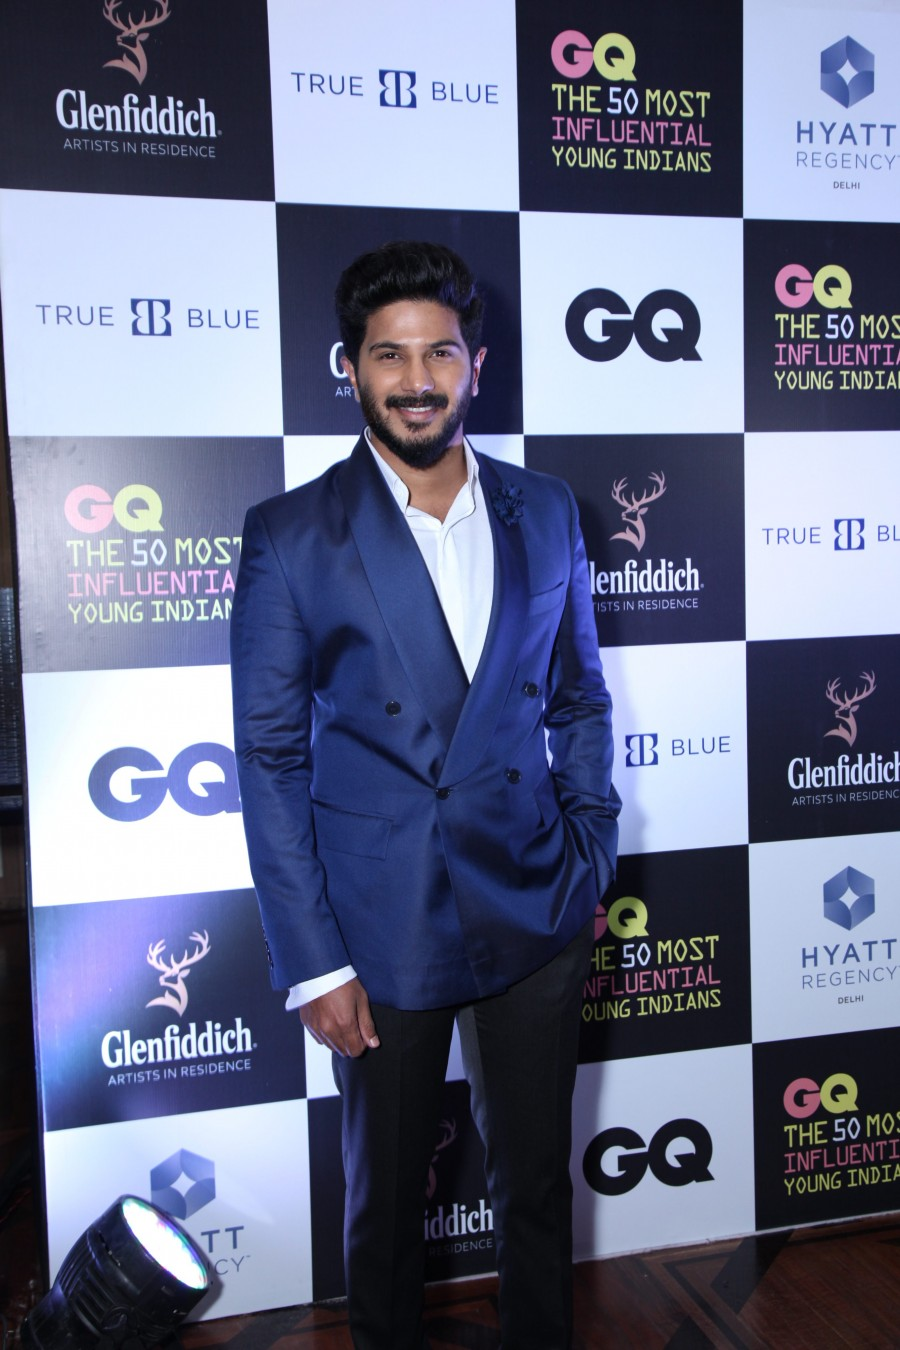 GQ 50 Most Influential Young Indians of 2016,GQ 50 Most Influential Young Indians,Aamir Khan,Dulquer Salmaan,Mandira Bedi,Arjun Mehra,Publishing Director,Vijendra Bhardwaj,Fashion Director,Condé Nast India,Oona Dhabar,Sunil Sethi,Rahul Mishra